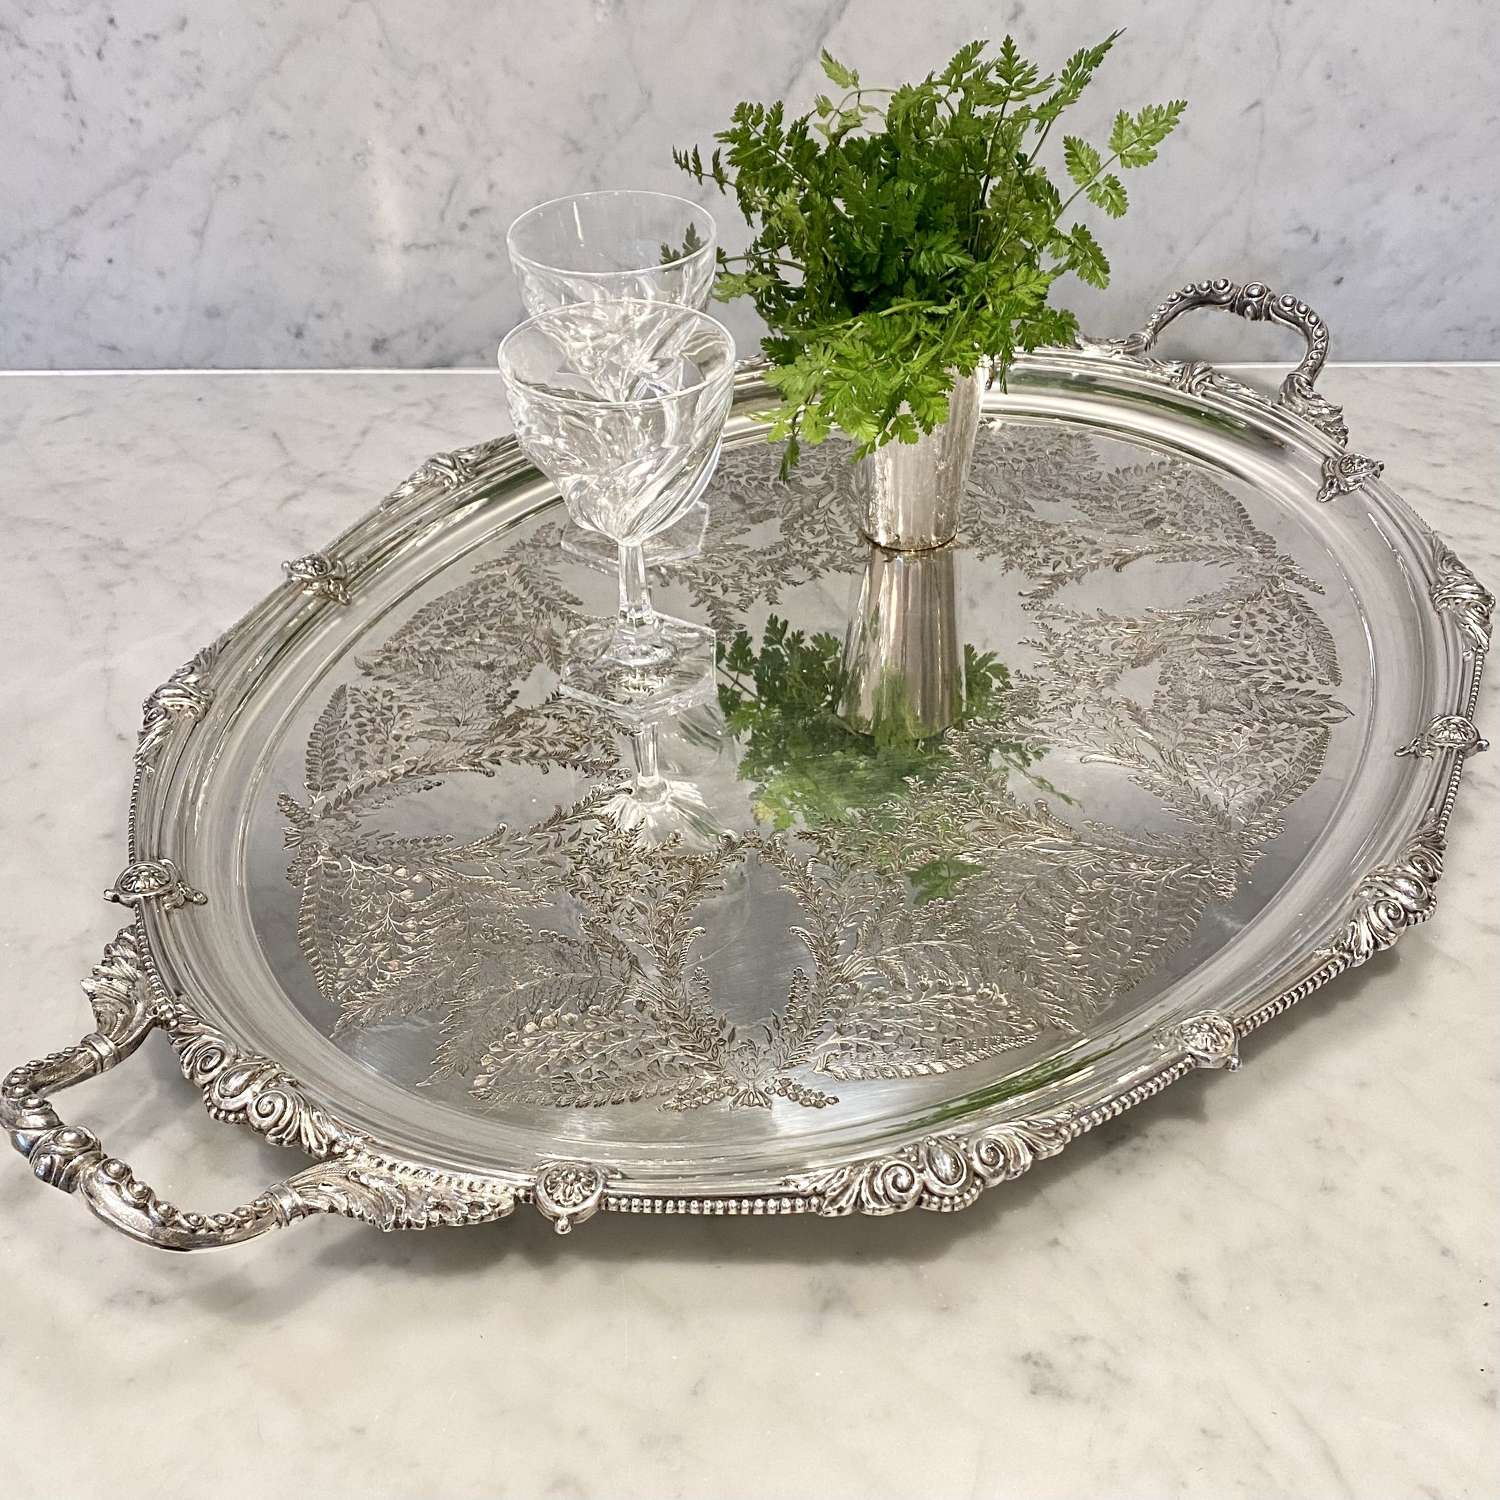 Superb quality fern etched Edwardian twin handled serving tray